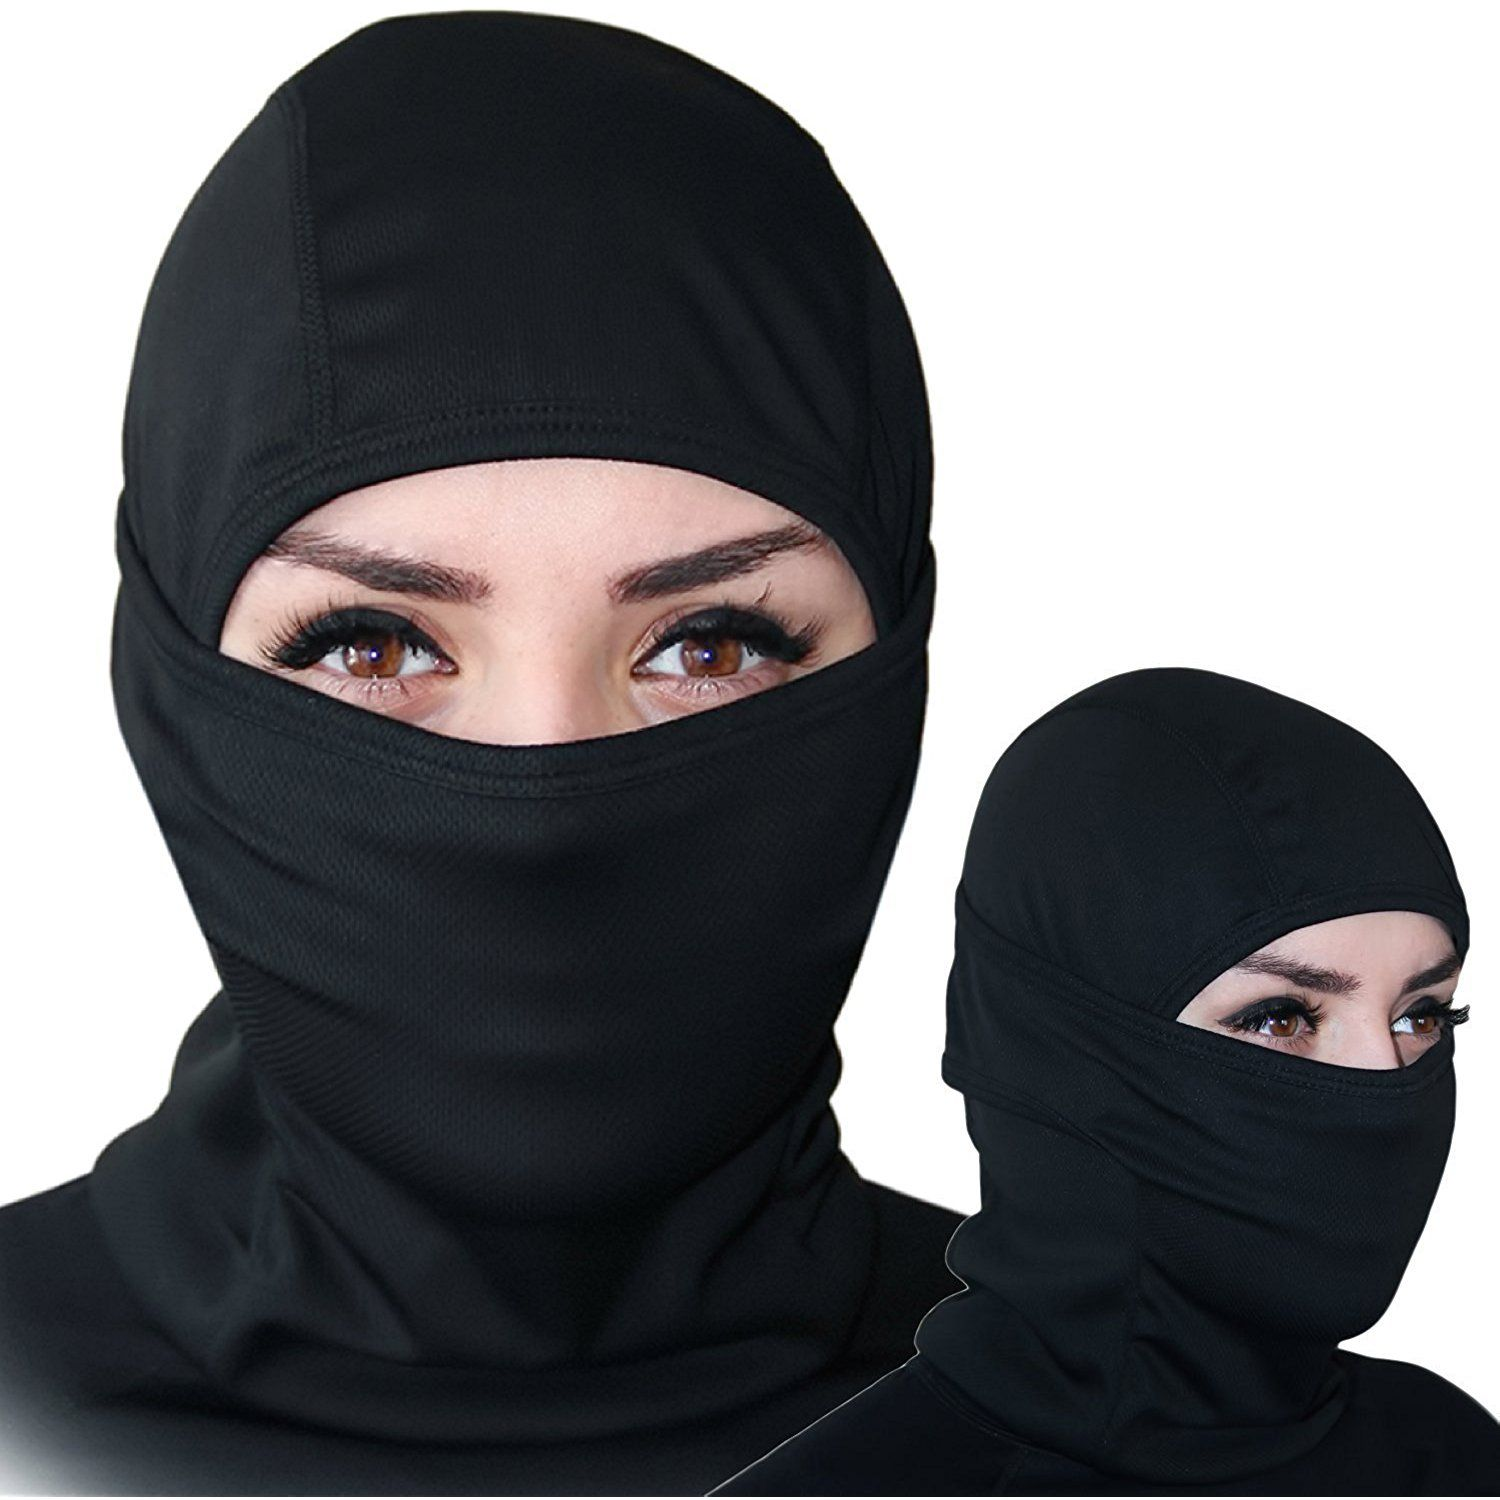 Balaclava - Windproof Ski Mask - Cold Weather Face Mask Motorcycle Neck  Warmer or Tactical Balaclava Hood - Ultimate Thermal Retention in Outdoors  Super ... a1d8a9481